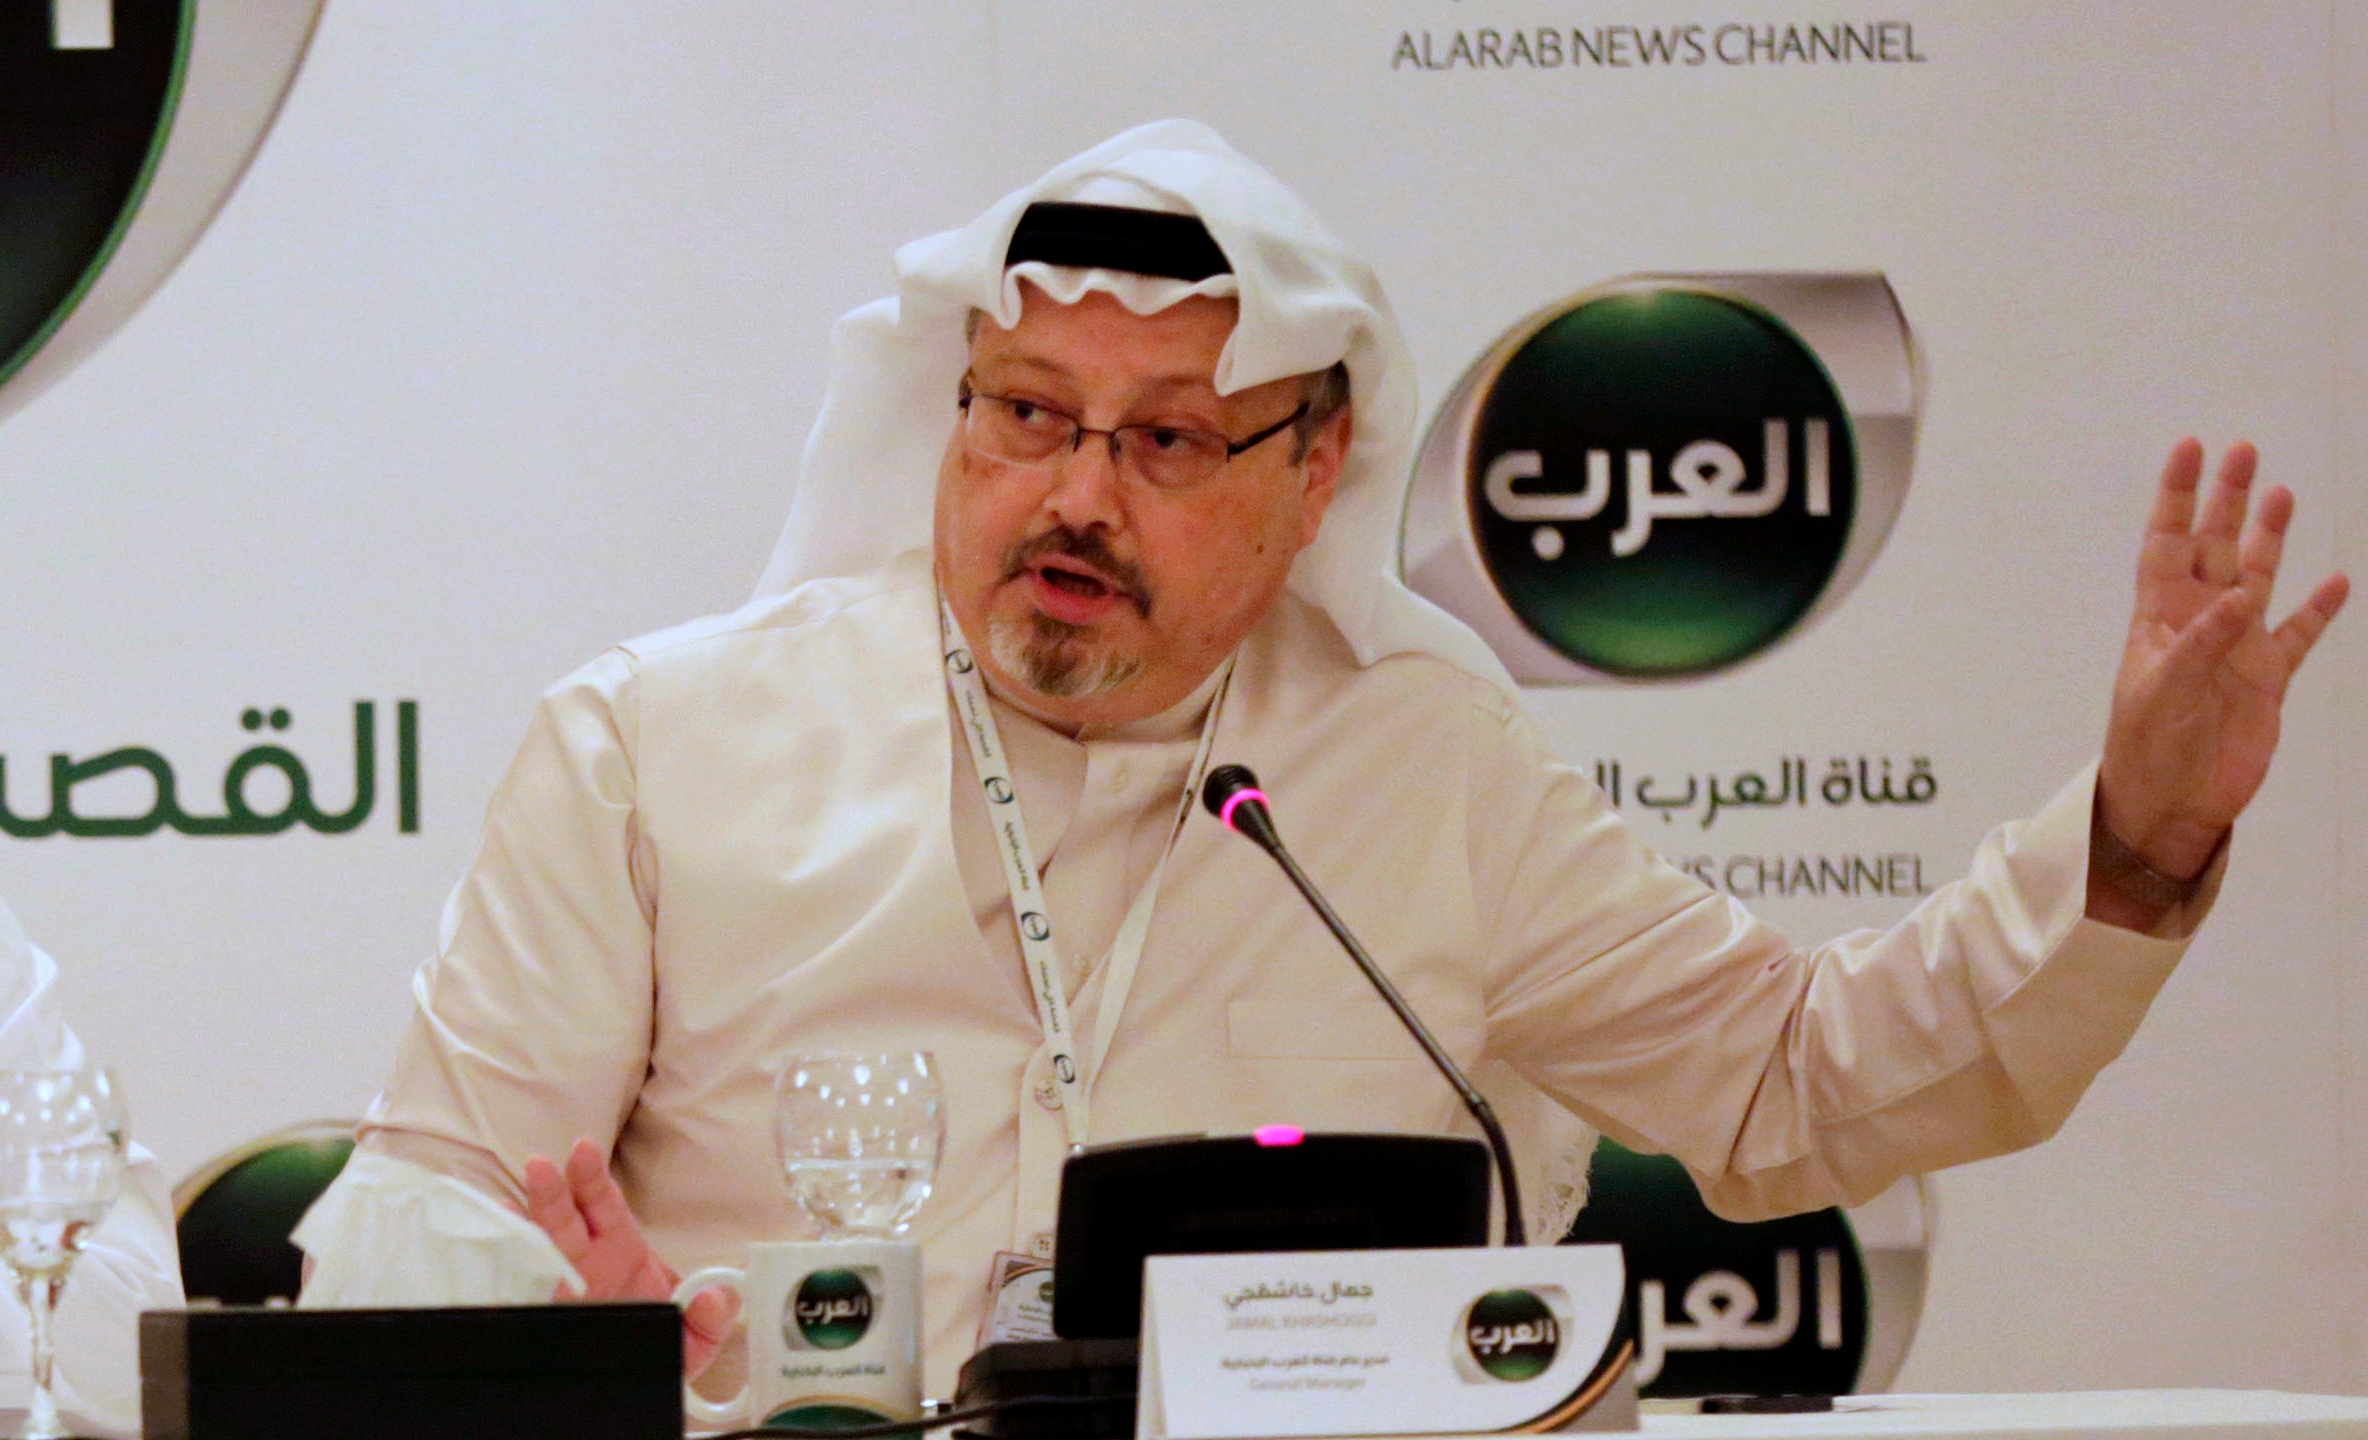 Saudi_Who_is_Khashoggi_10103-159532.jpg64930914